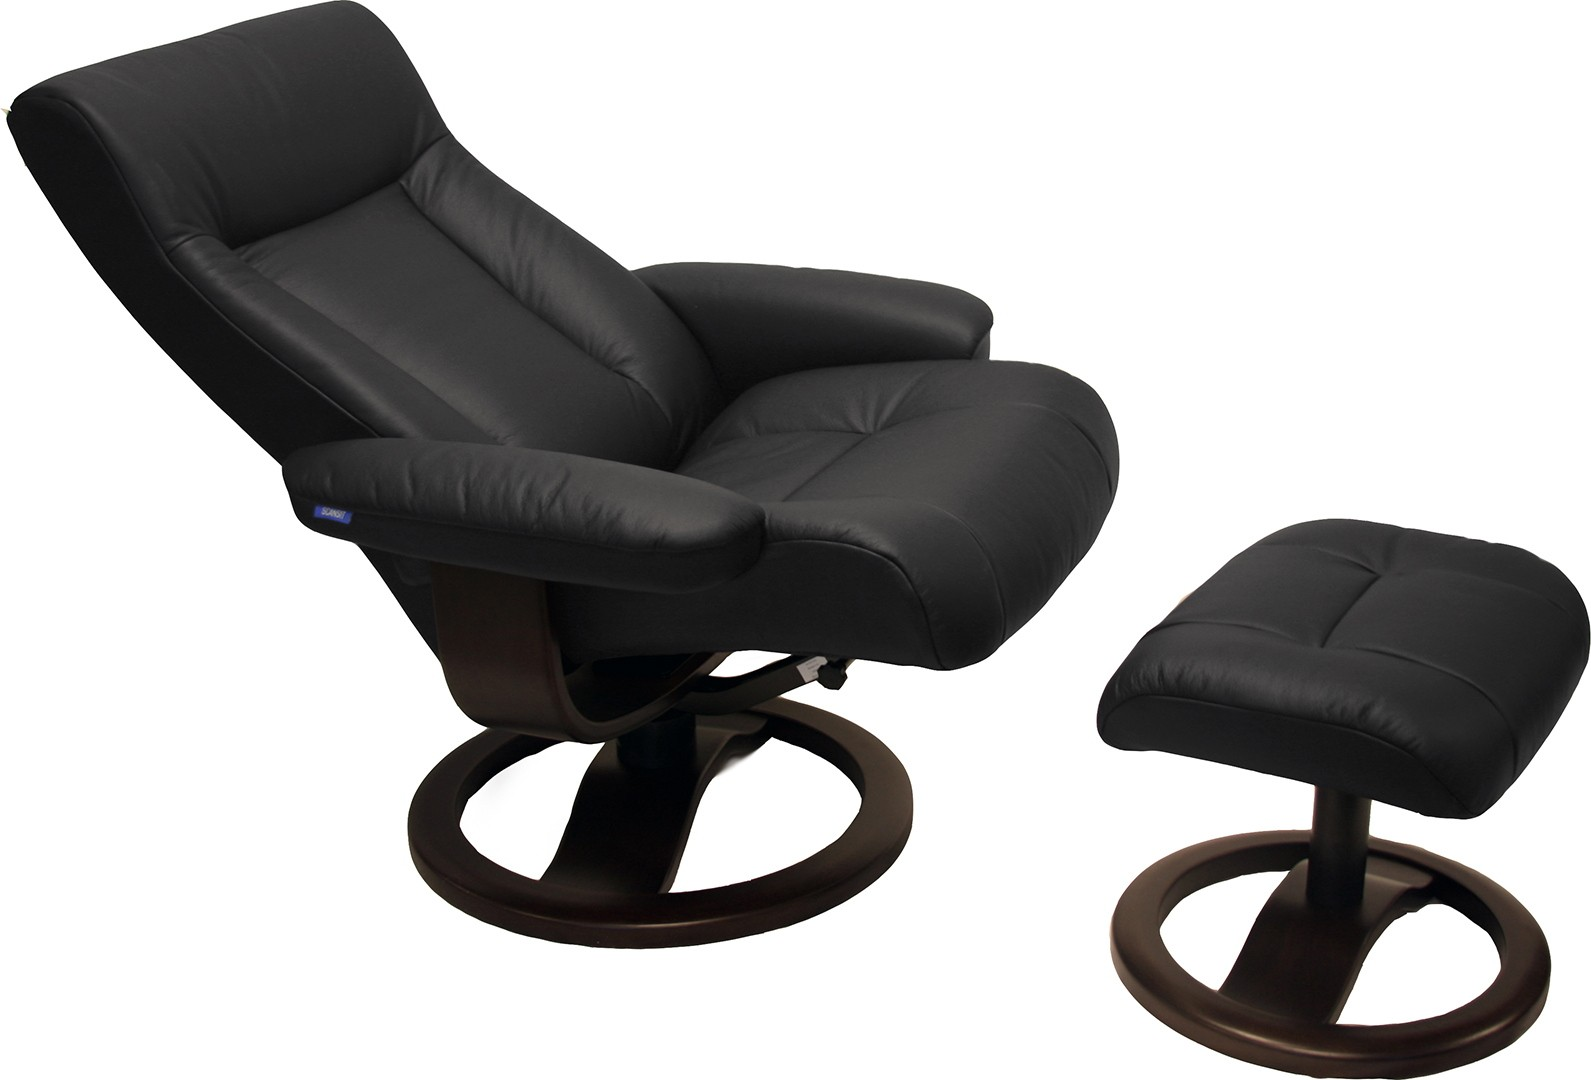 Relax The Back Office Chair Reviews: Hjellegjerde Scansit 110 Chair Large